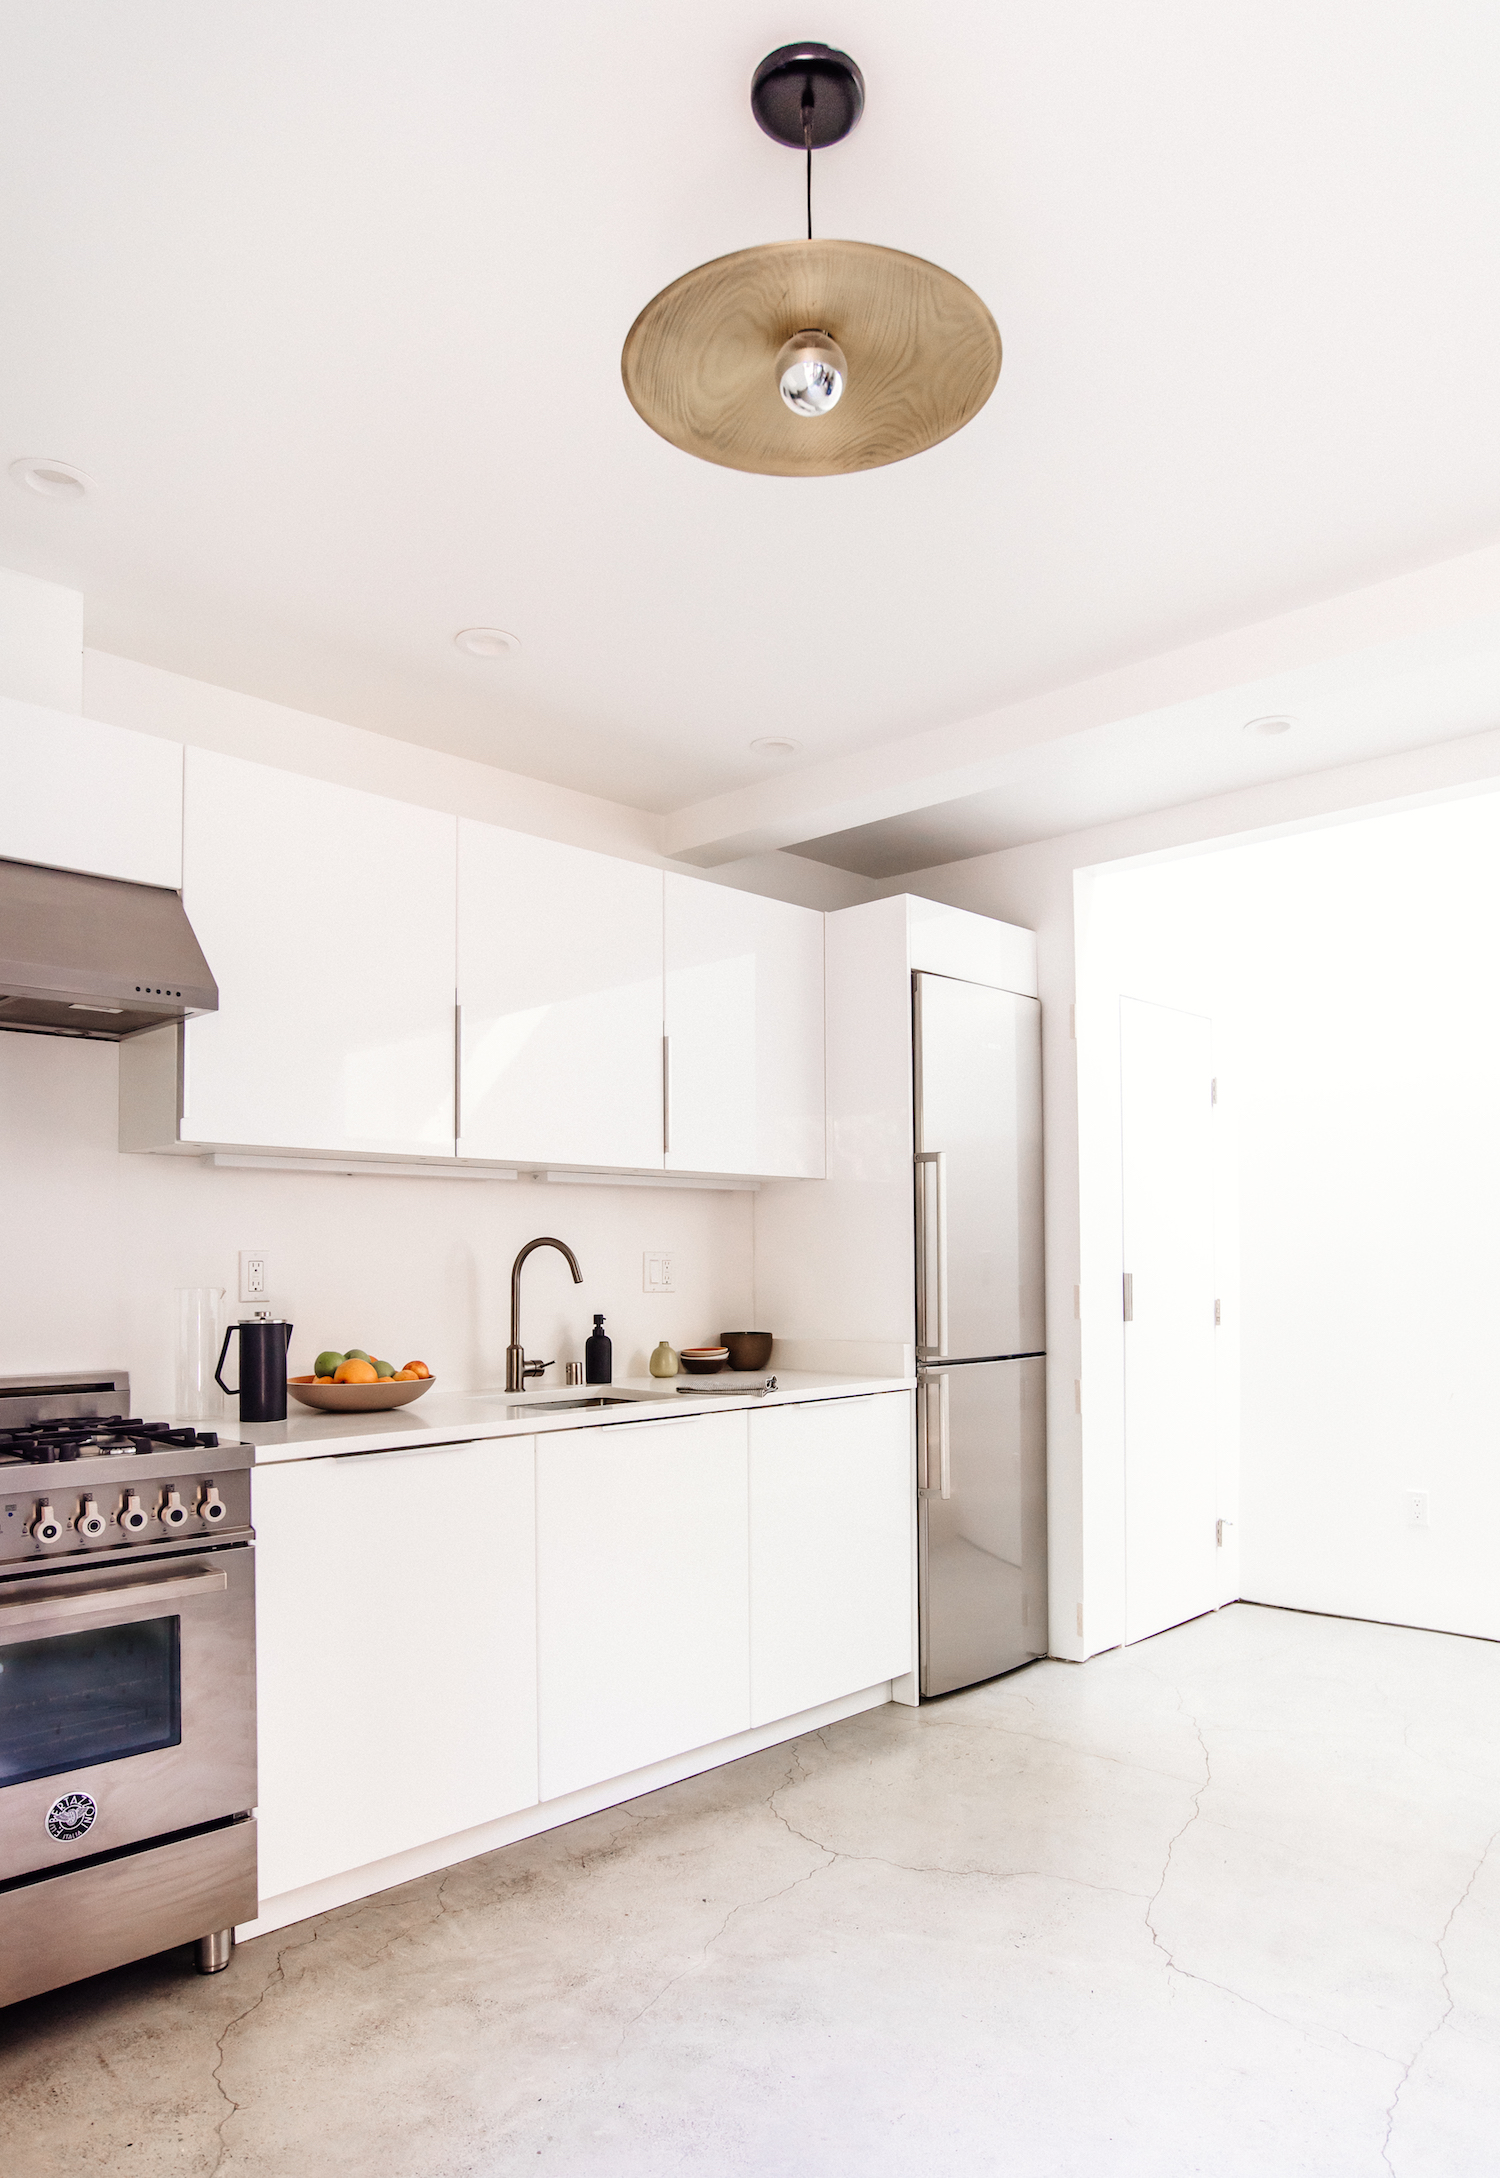 kitchen with cement floors and white cabinets and white marble counters and stainless steel appliances.jpg